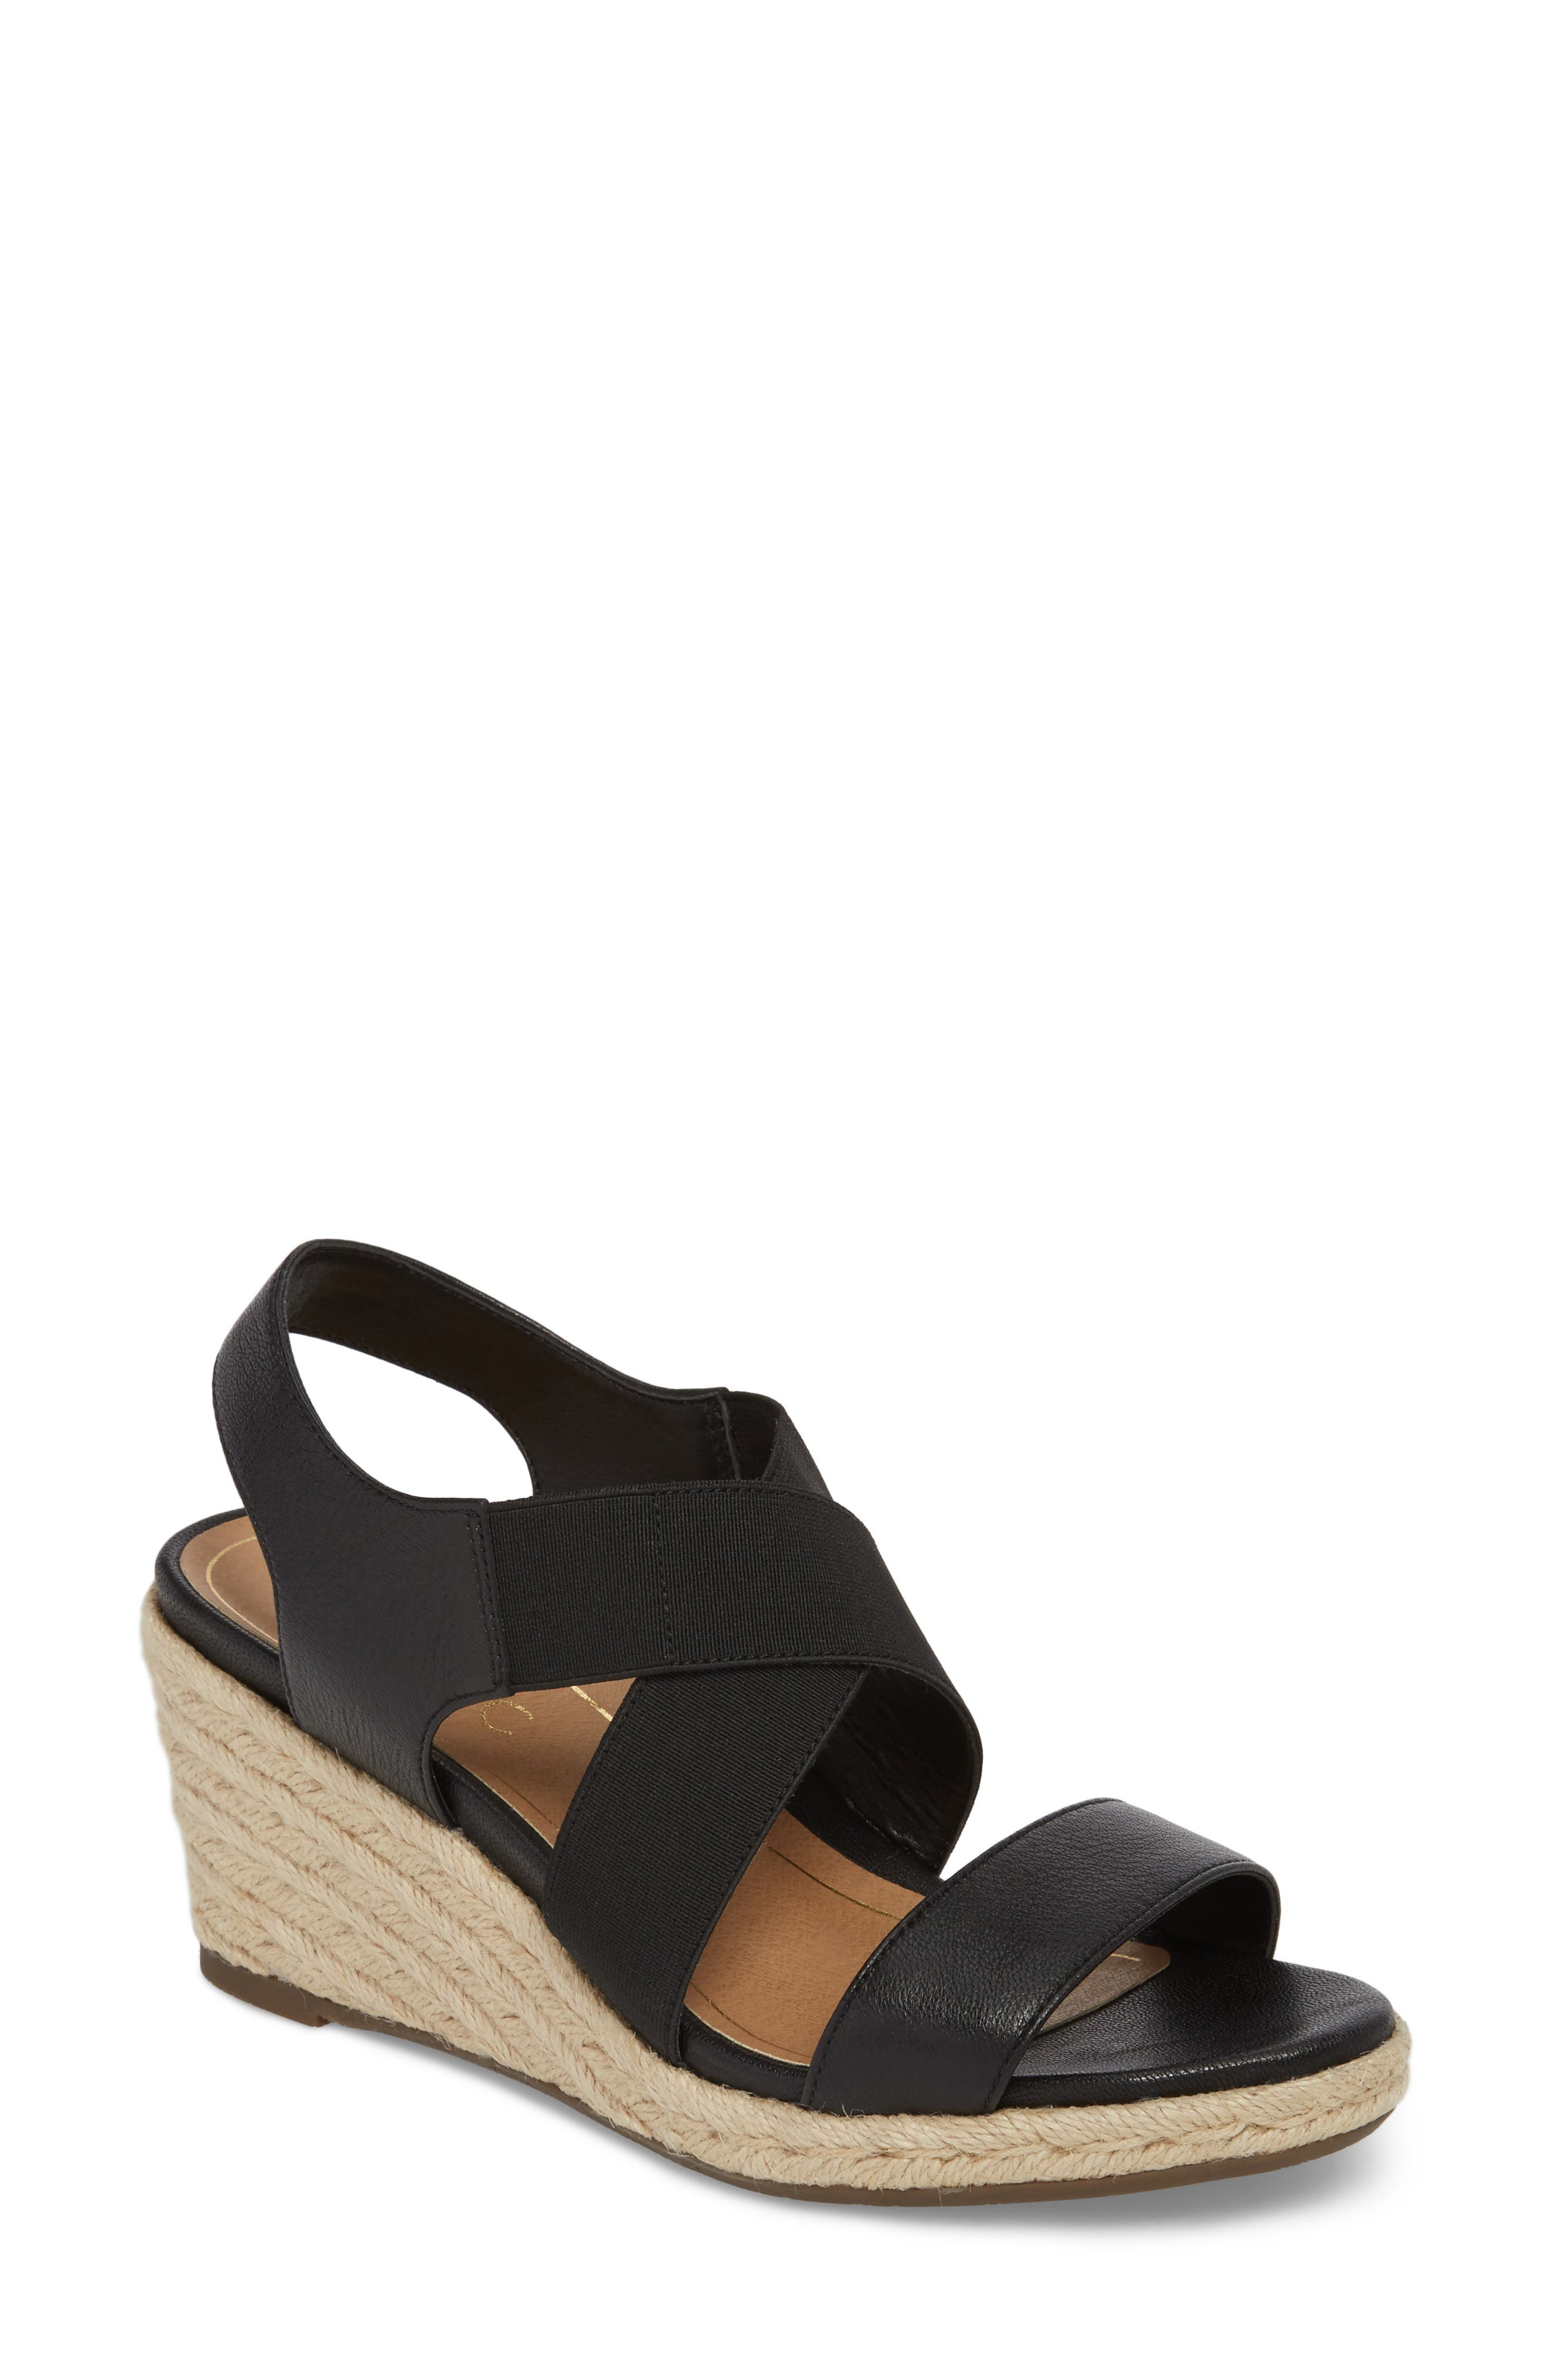 Ainsleigh Wedge Sandal,                             Main thumbnail 1, color,                             BLACK LEATHER